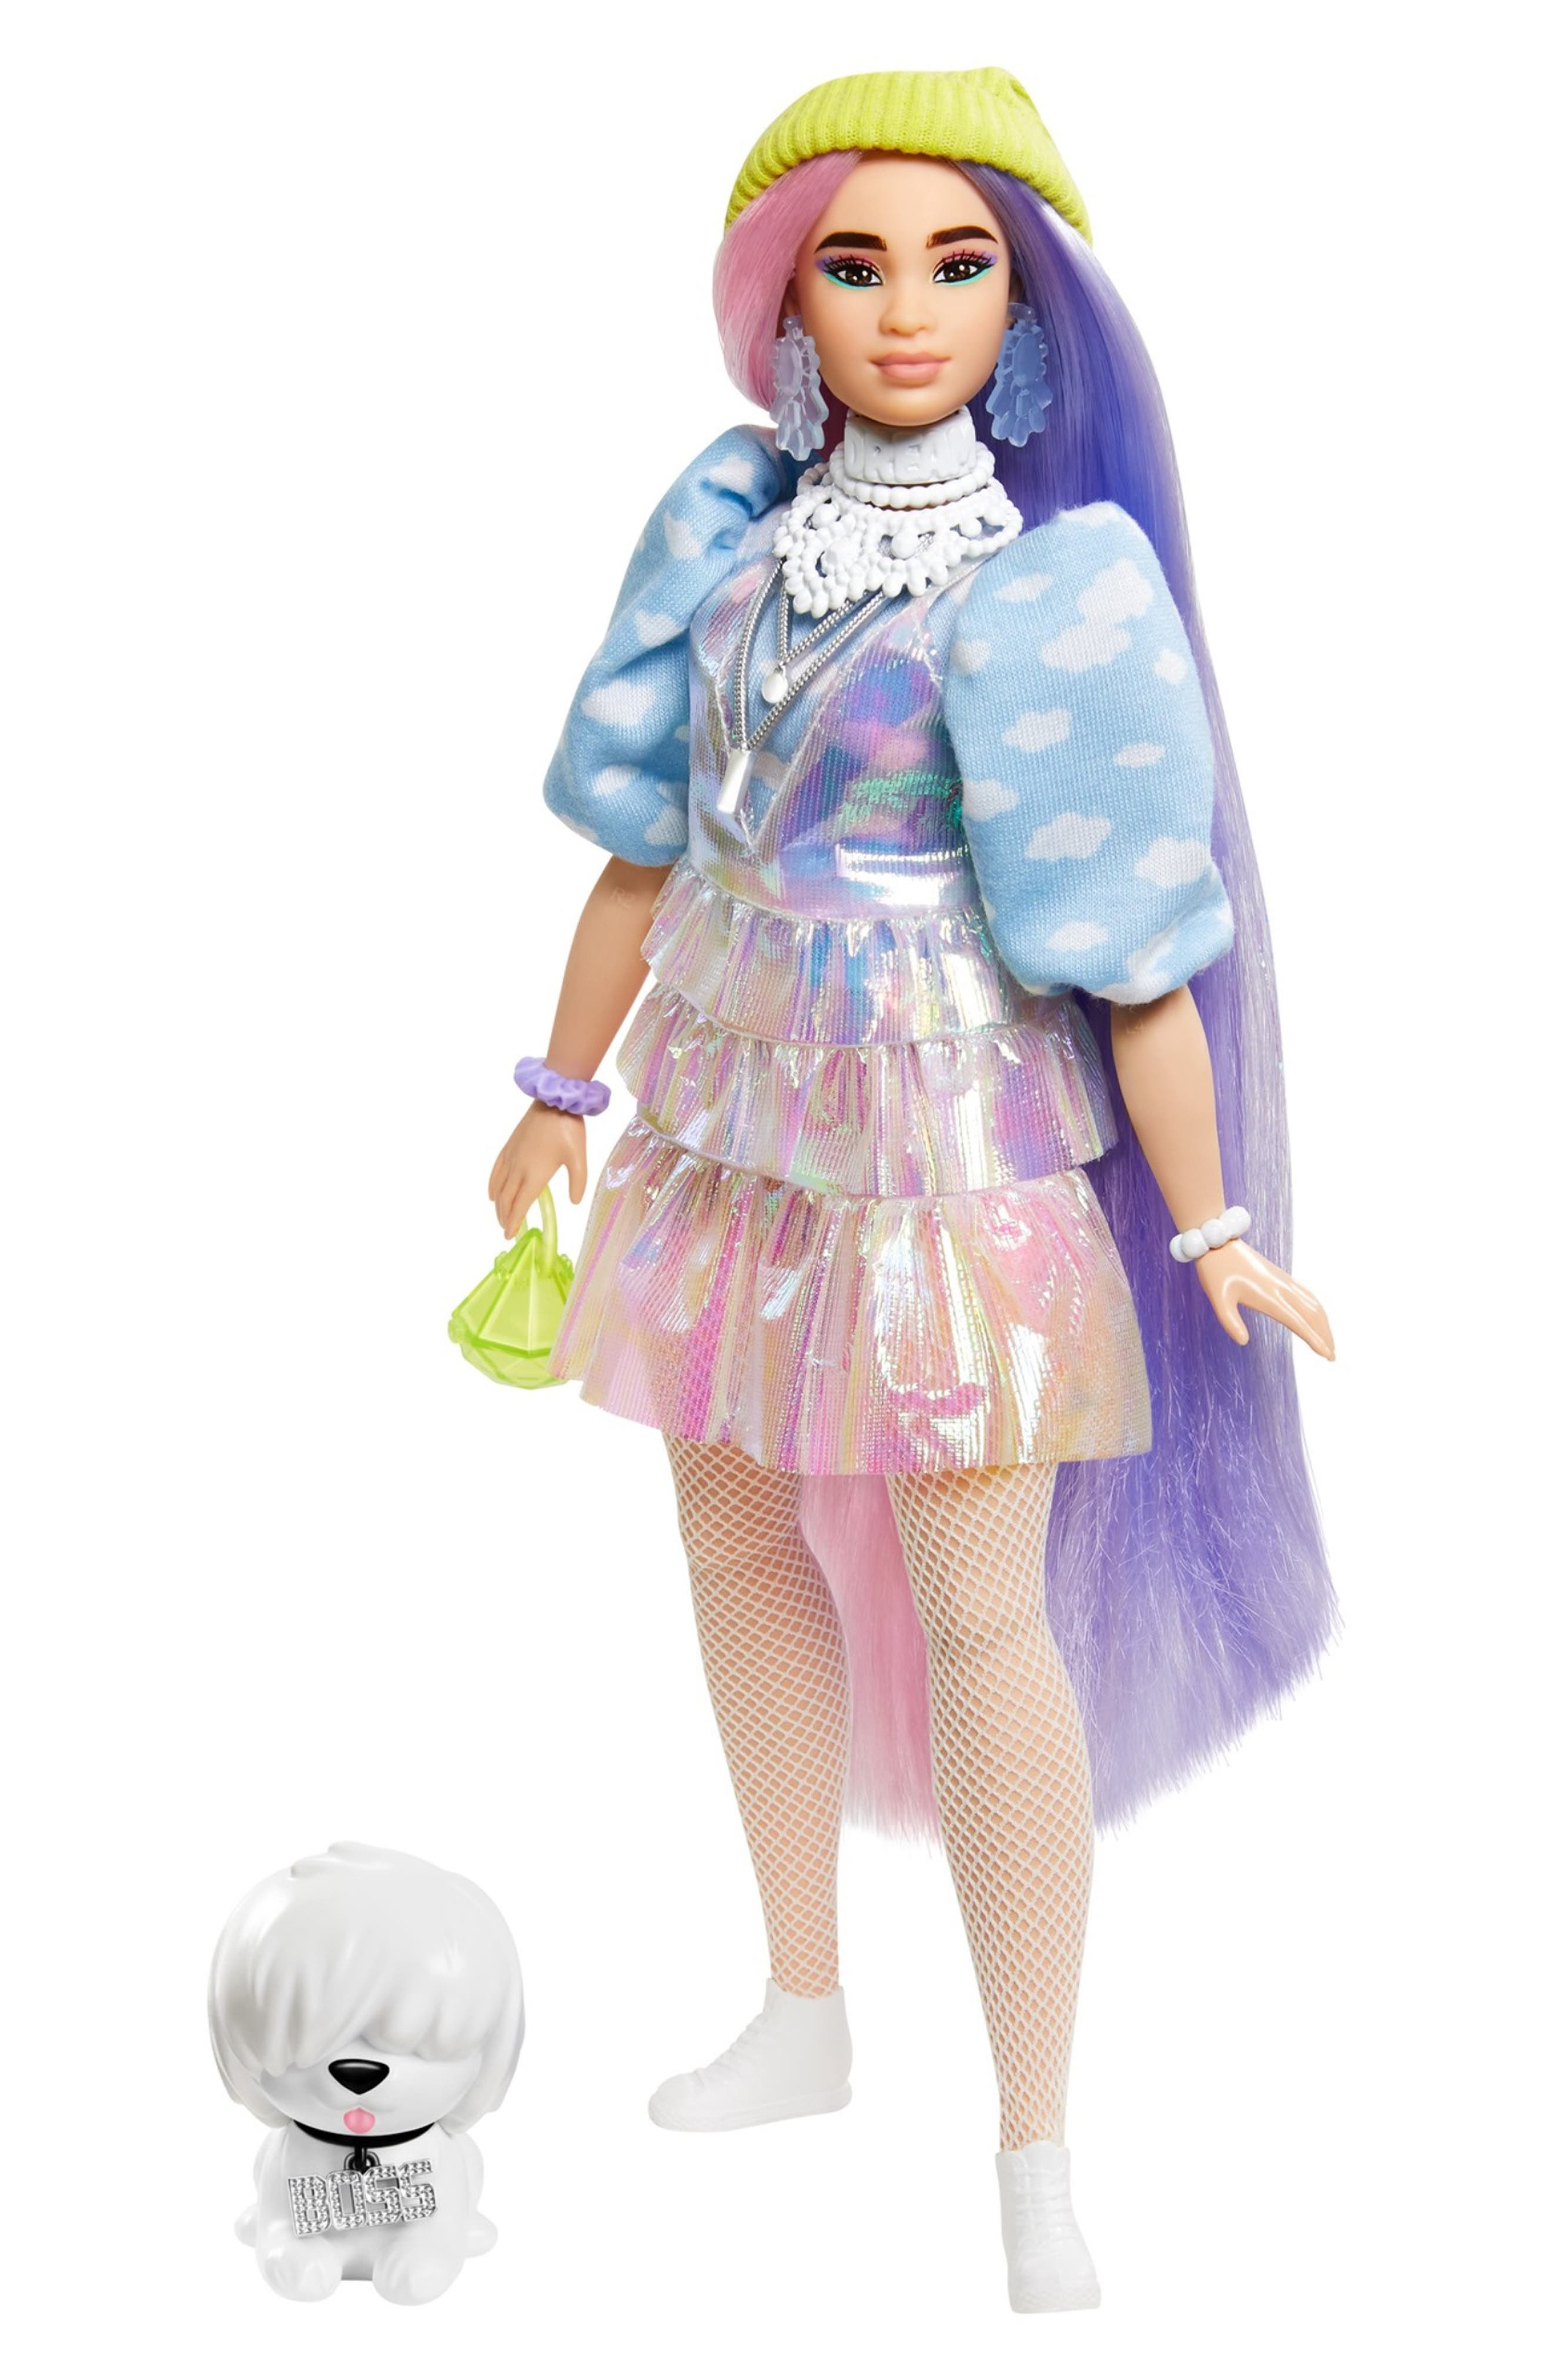 Image of Mattel Barbie Extra Doll #2 in Shimmery Look with Pet Puppy